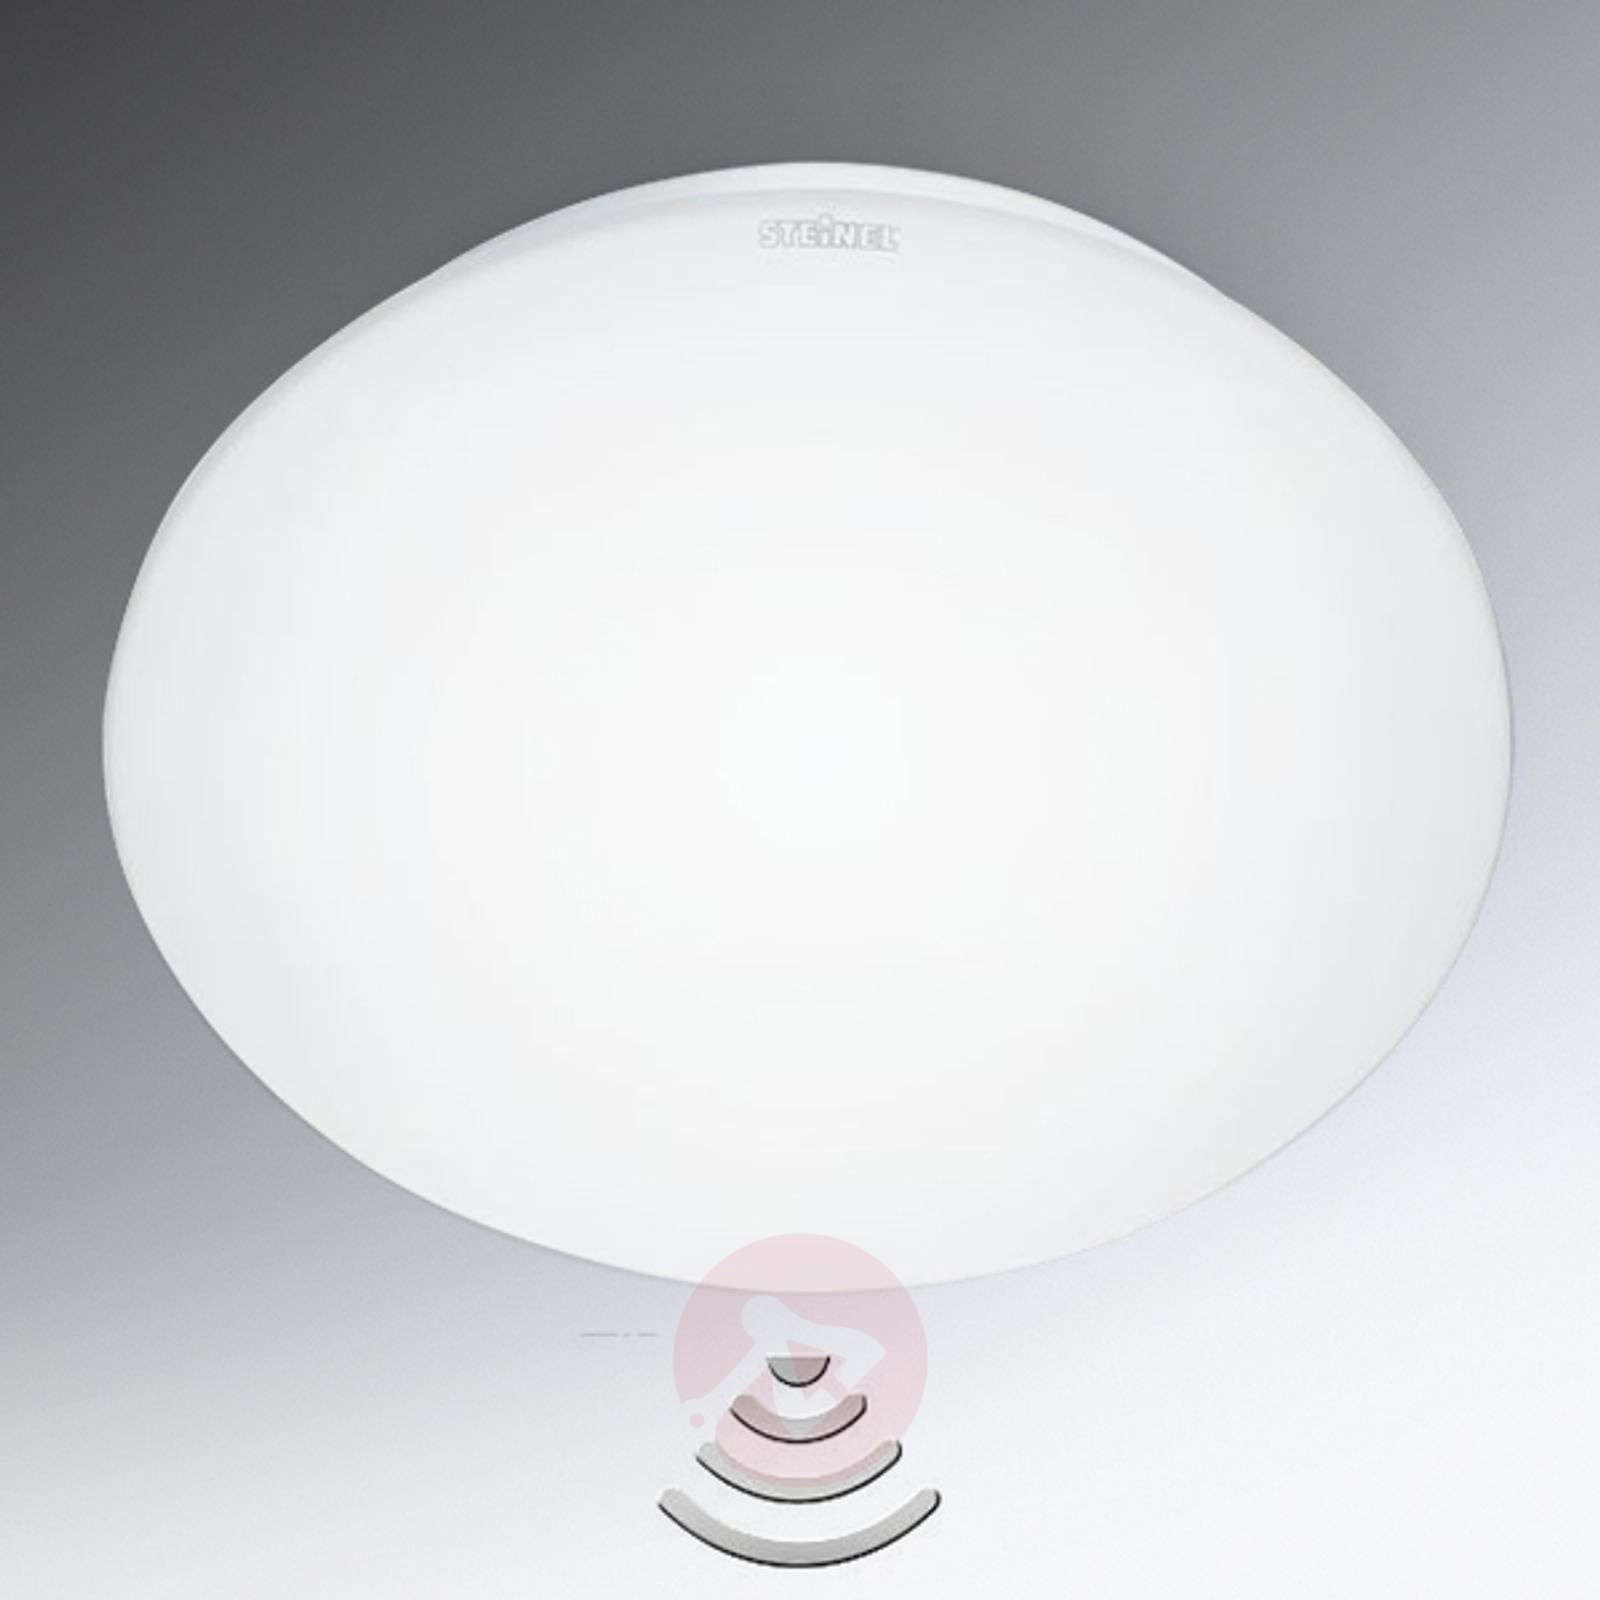 Round Led Ceiling Light Rs 16 With Sensor Lights Ie